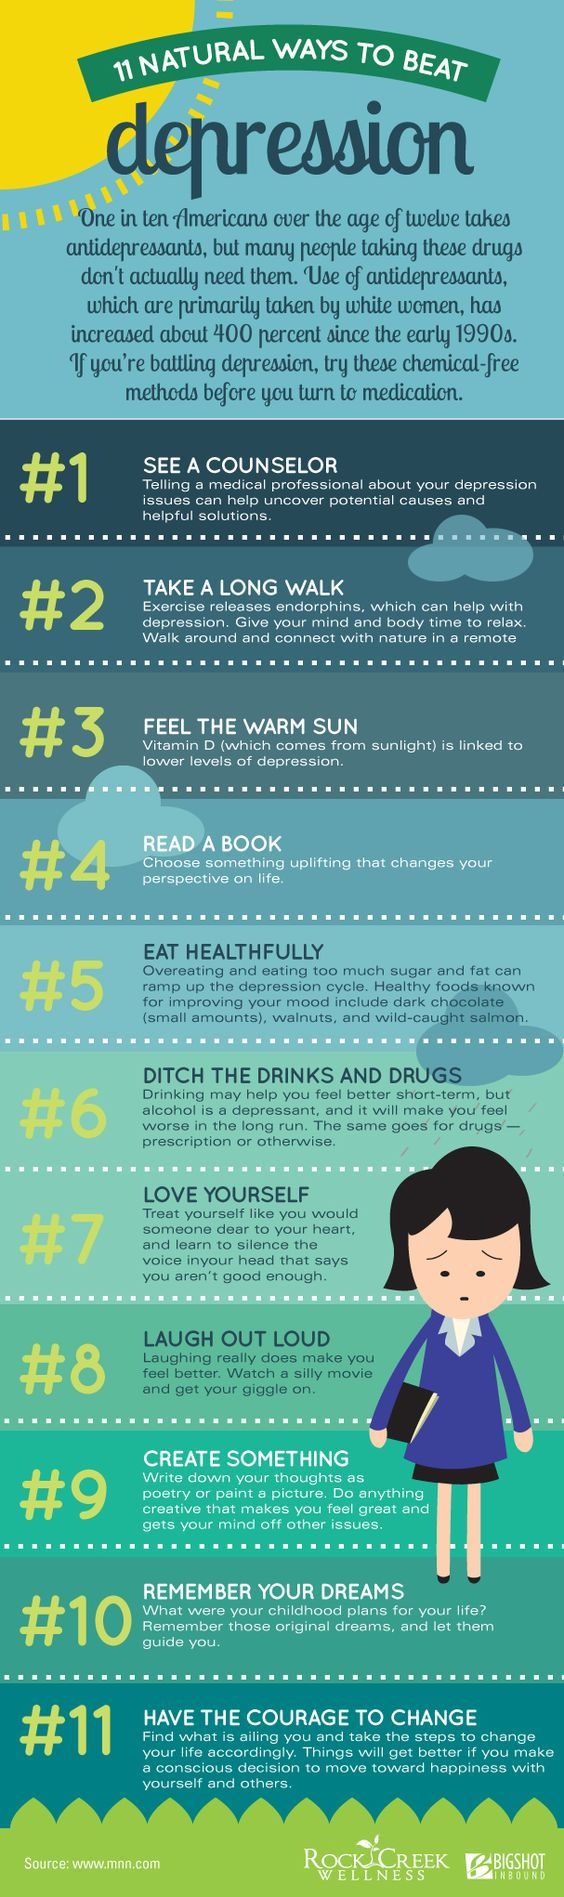 11 ways to beat depression